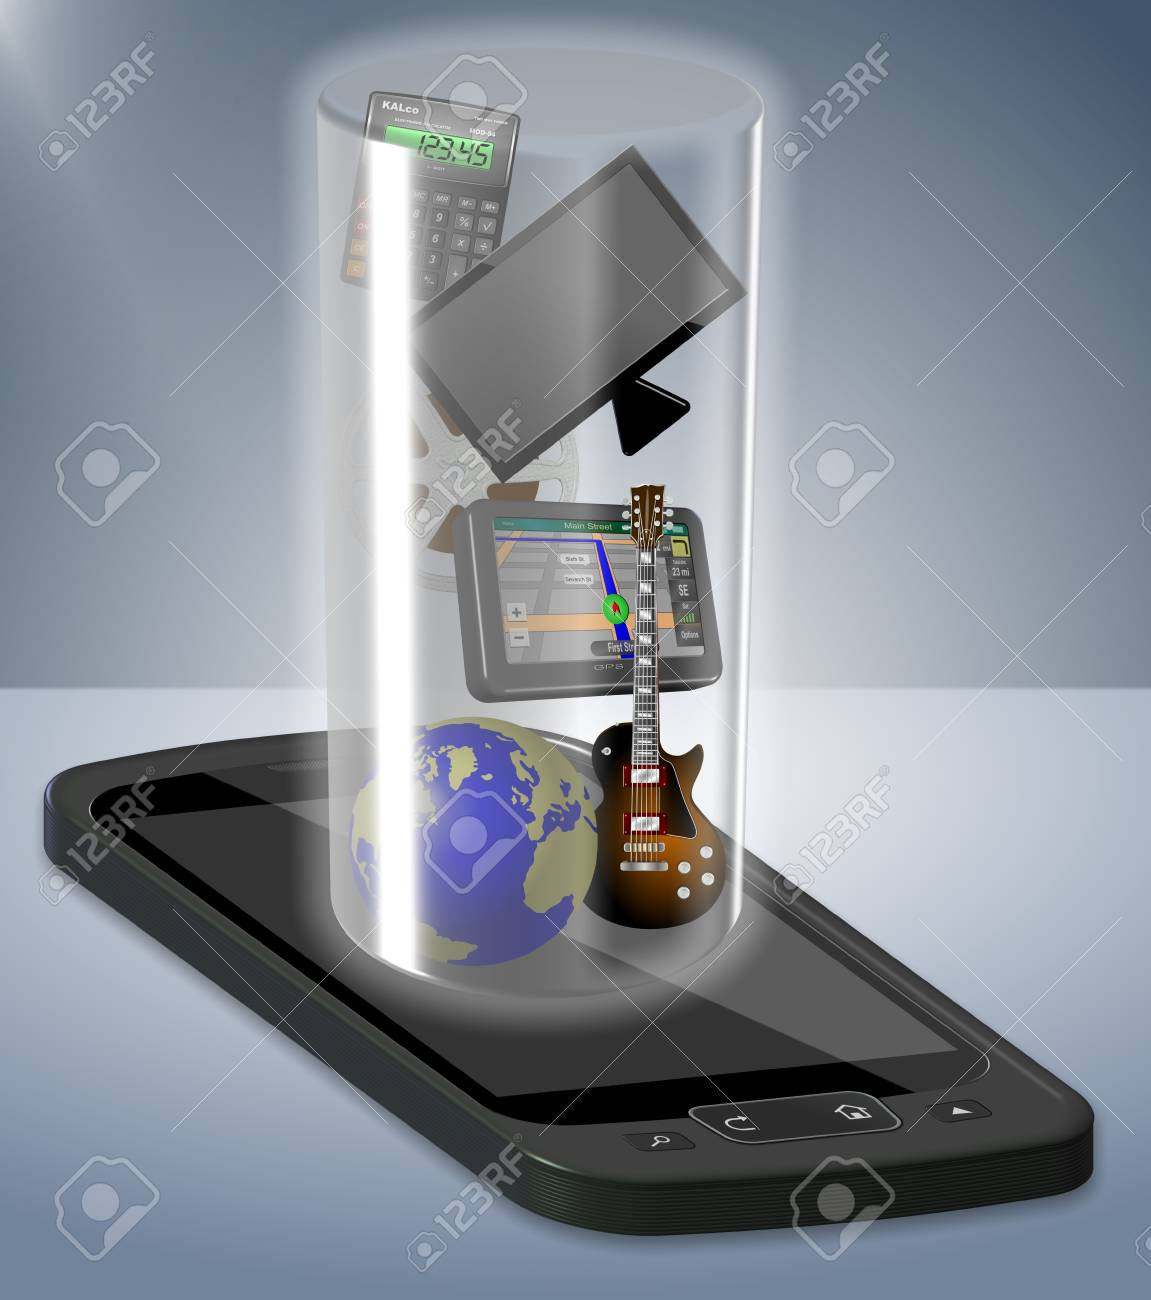 A mobile phone containing many modern technologies and ways to entertain Stock Photo - 10953026